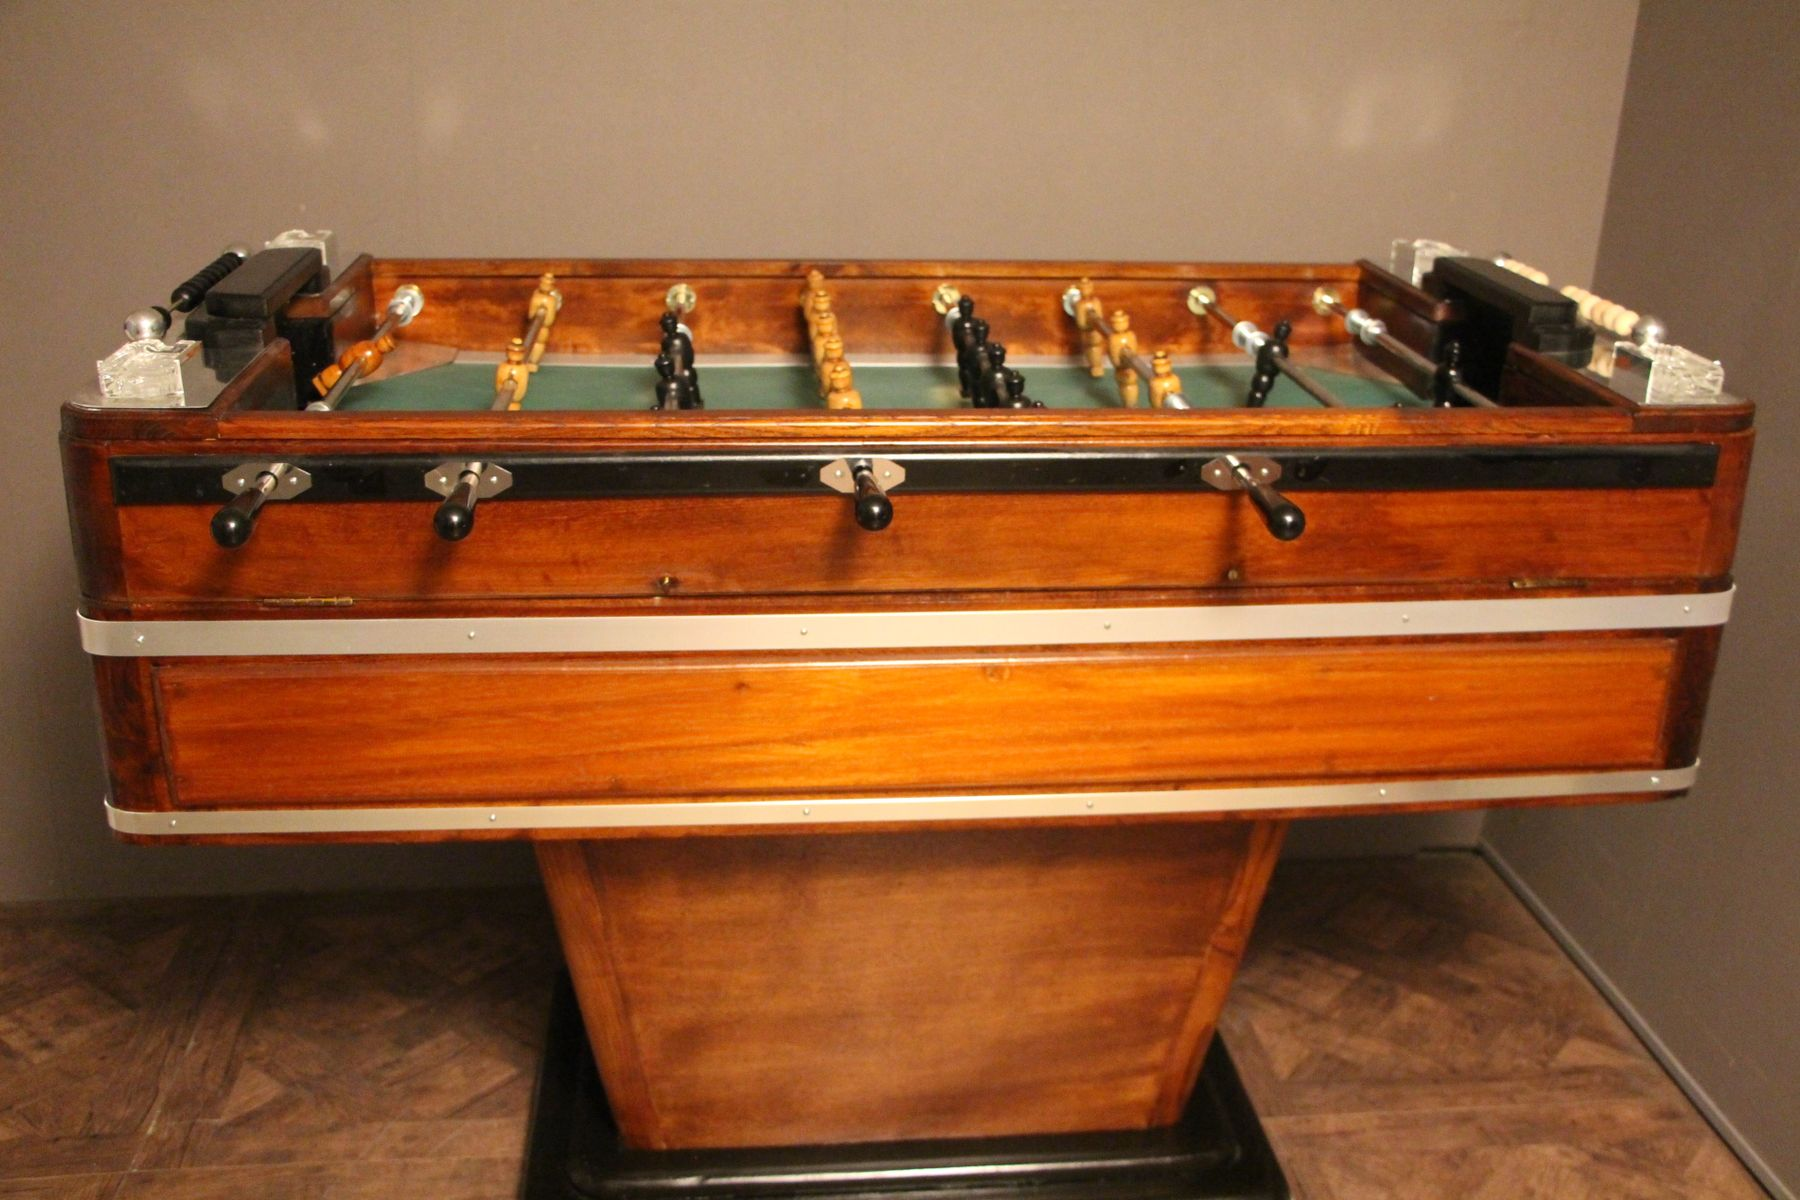 Wood Aluminum Foosball Table S For Sale At Pamono - Antique foosball table for sale